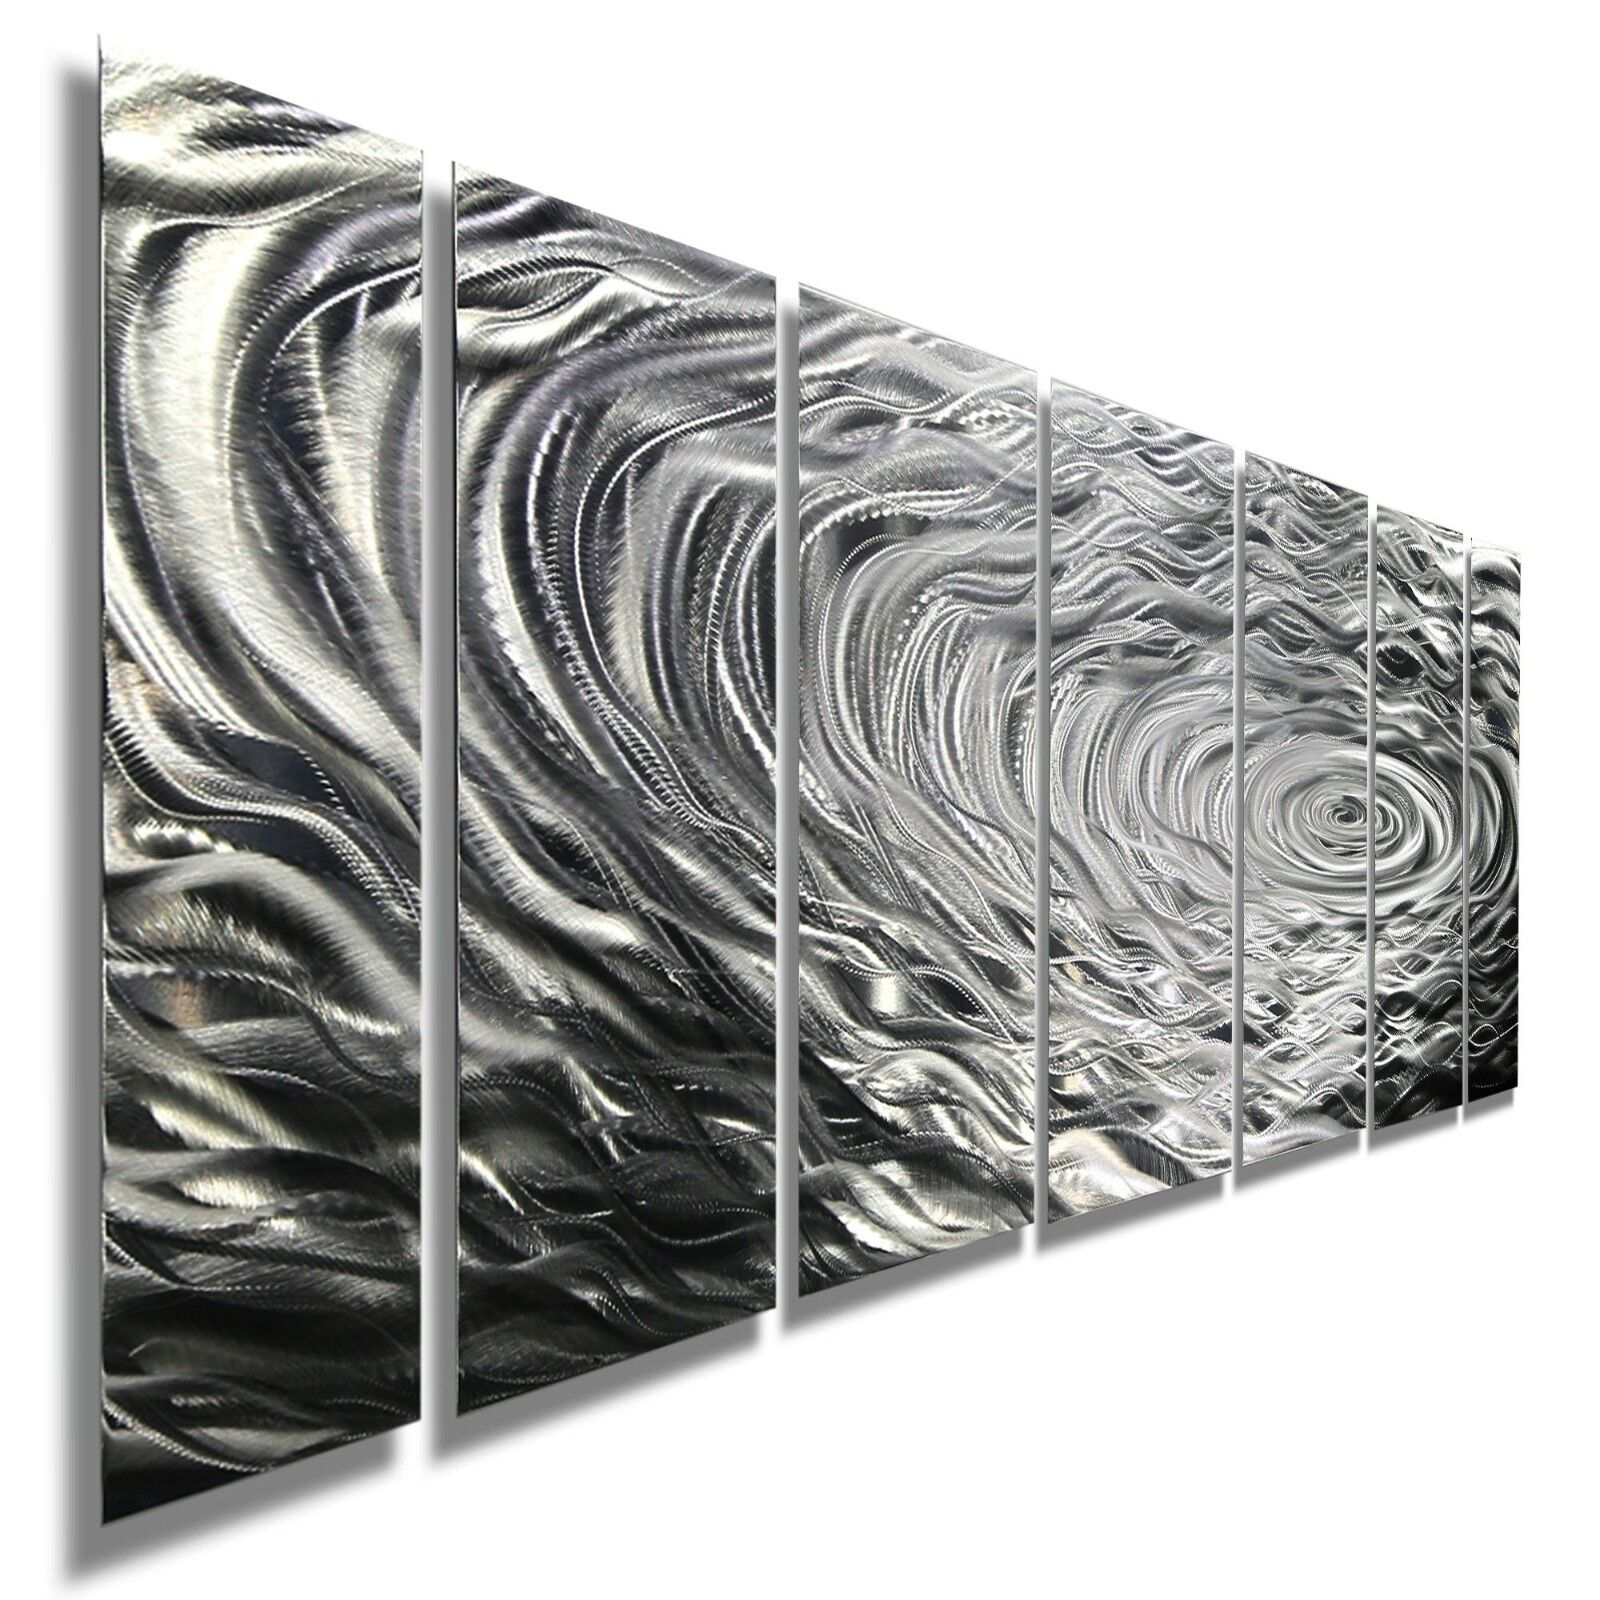 Statement2000 3D Metal Wall Art Abstract Silver Decor Jon Allen Ripple Effect